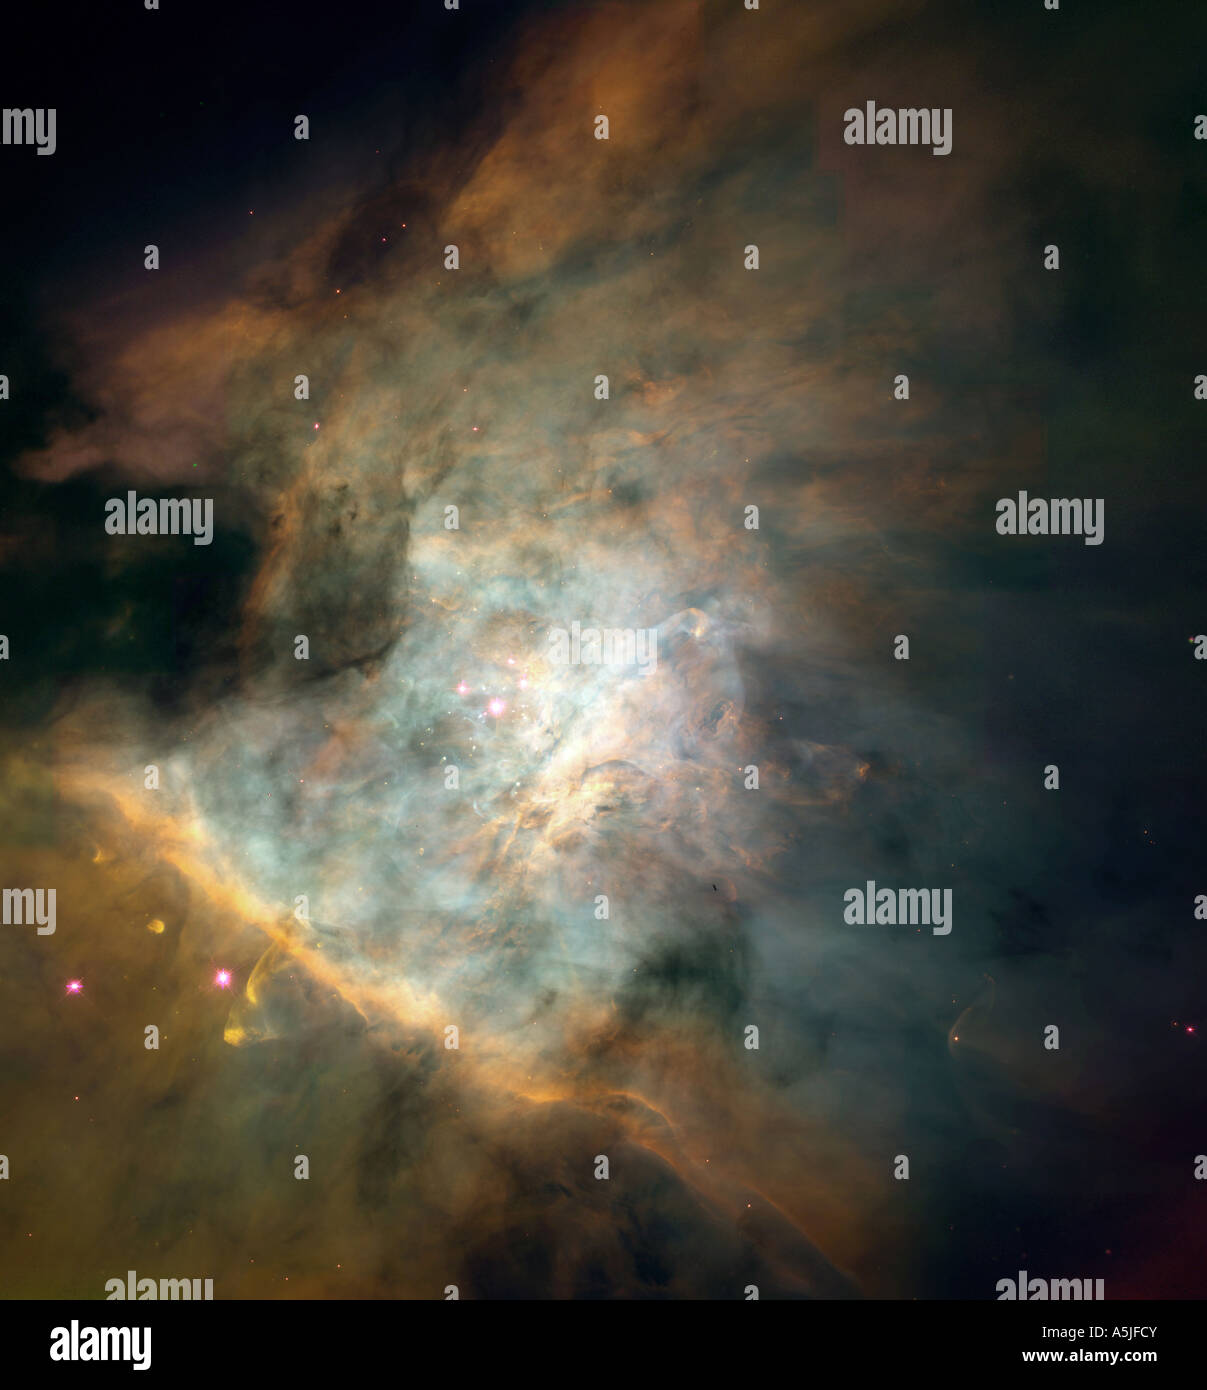 Center of  the Orion nebula assembled from individual images taken with NASA's Hubble Space Telescope. - Stock Image